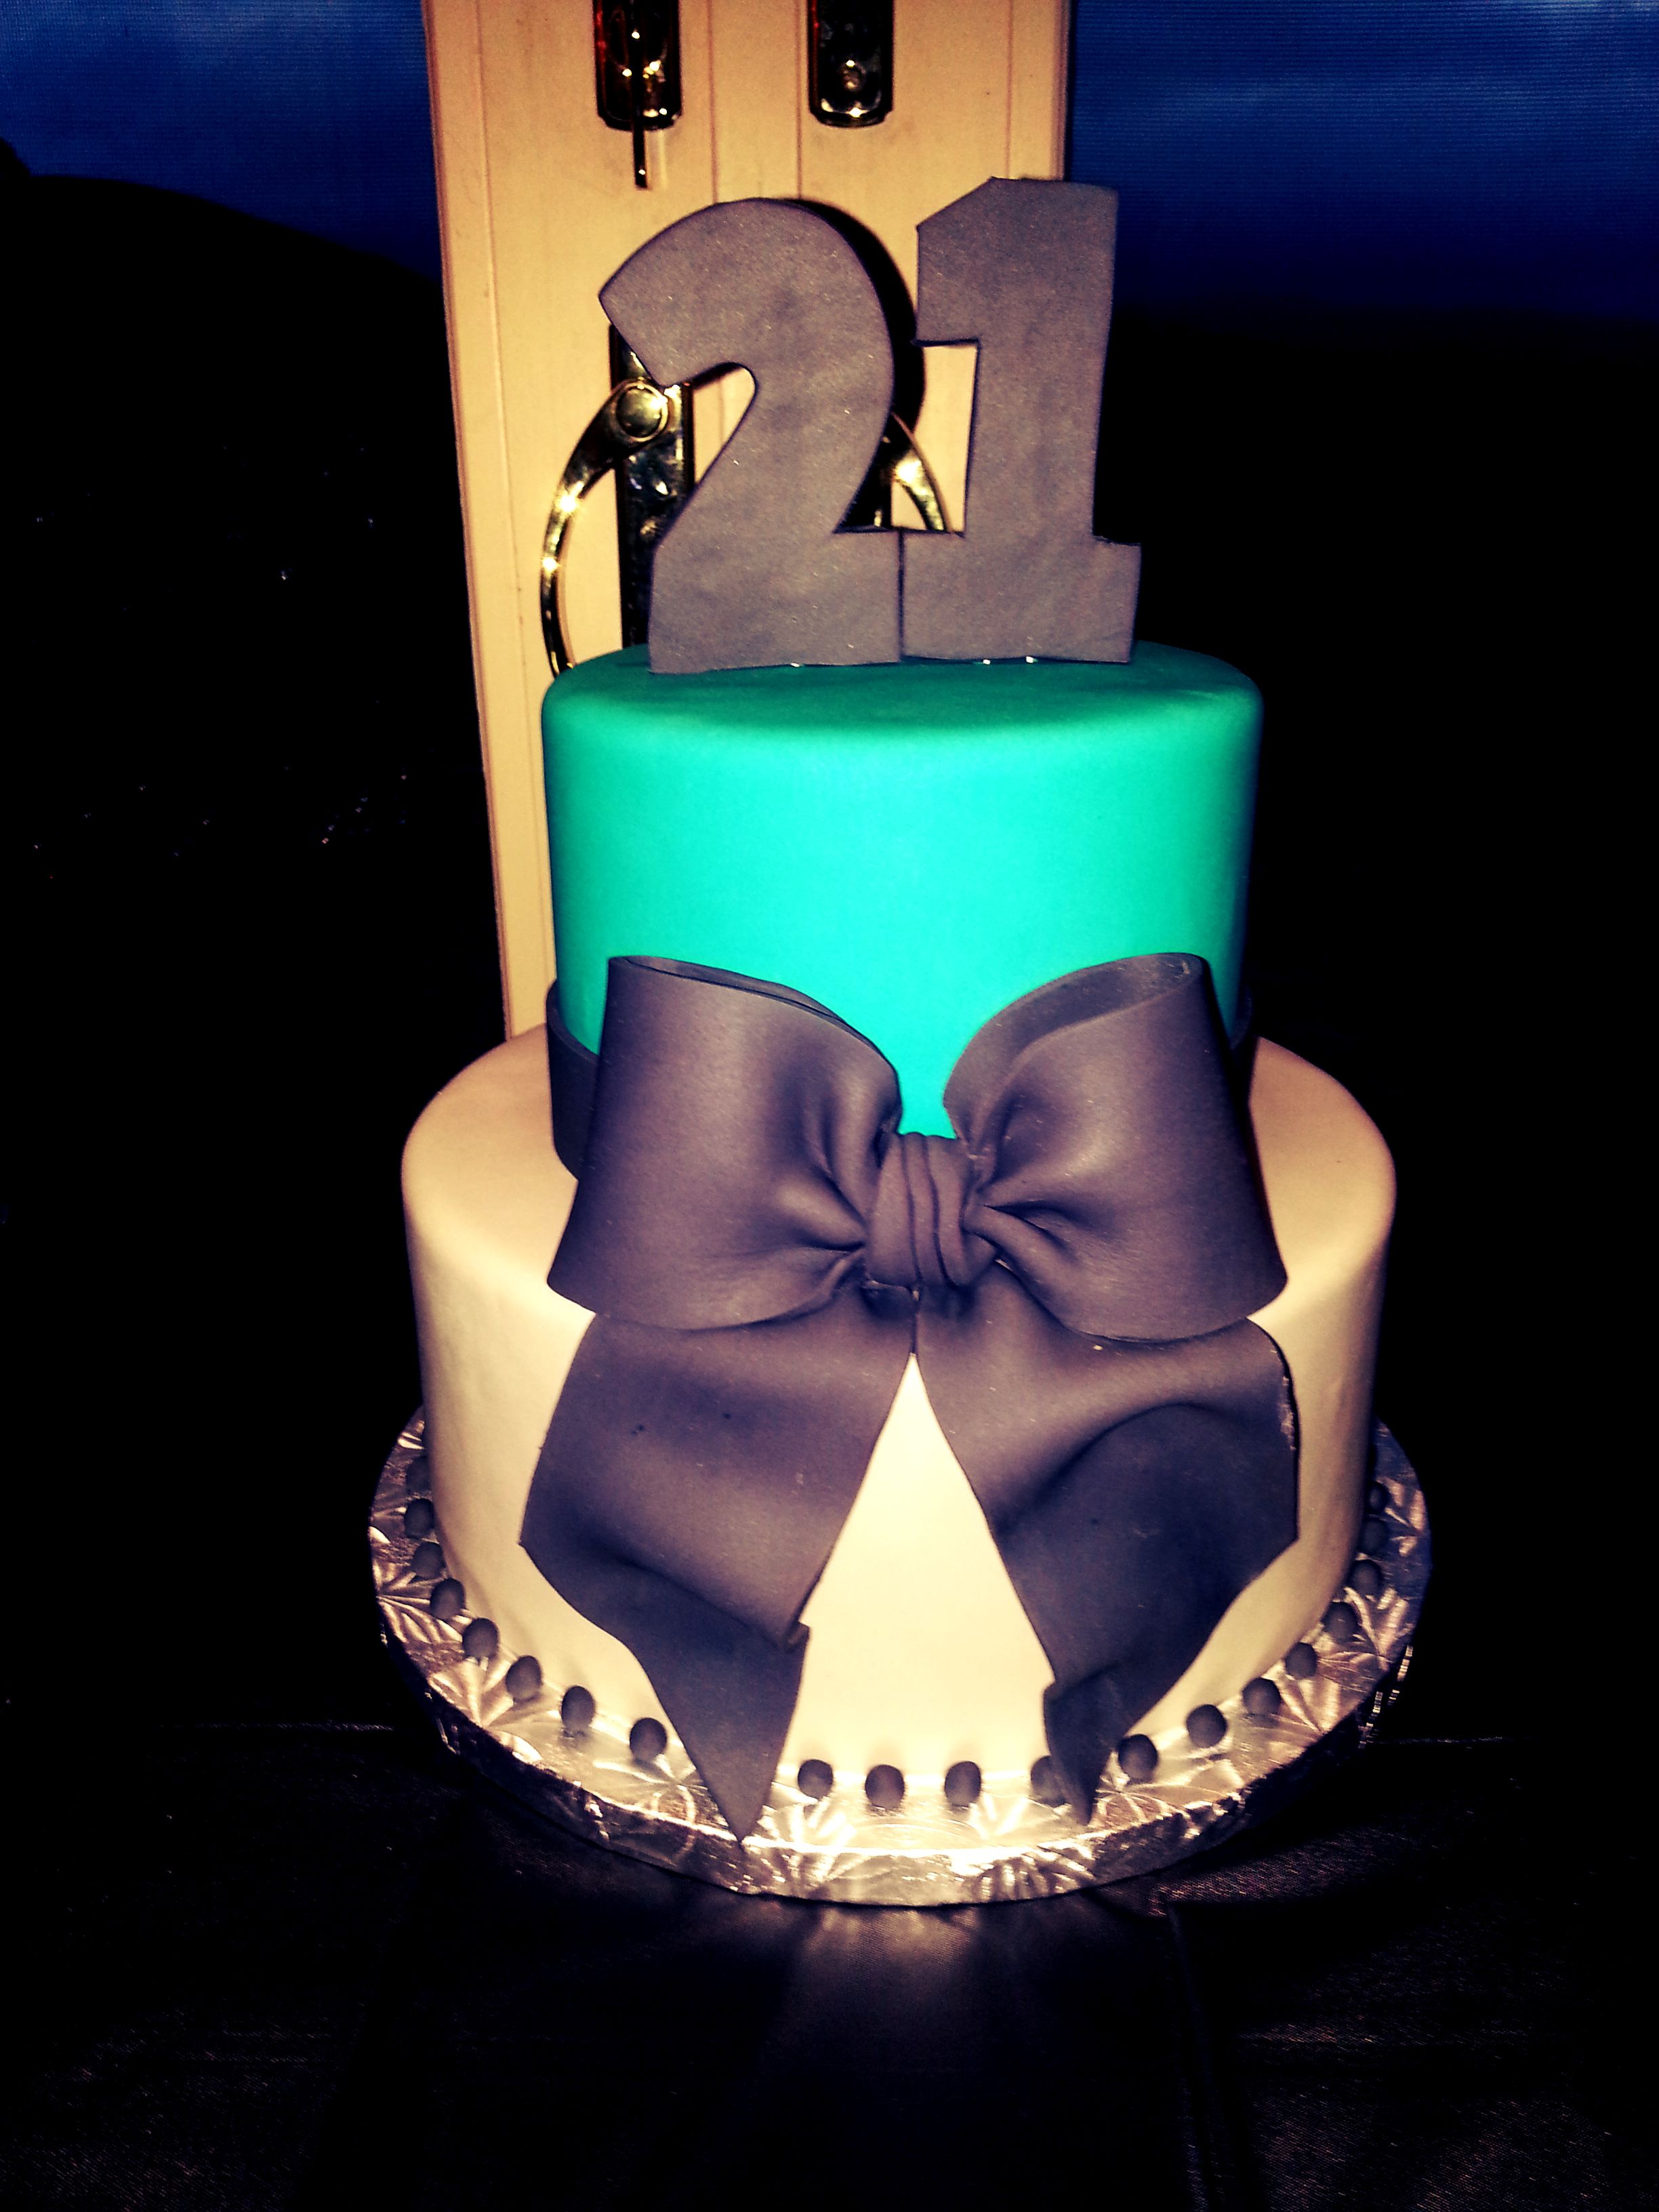 21st birthday cake college years pinterest for 21st birthday decoration ideas for girls